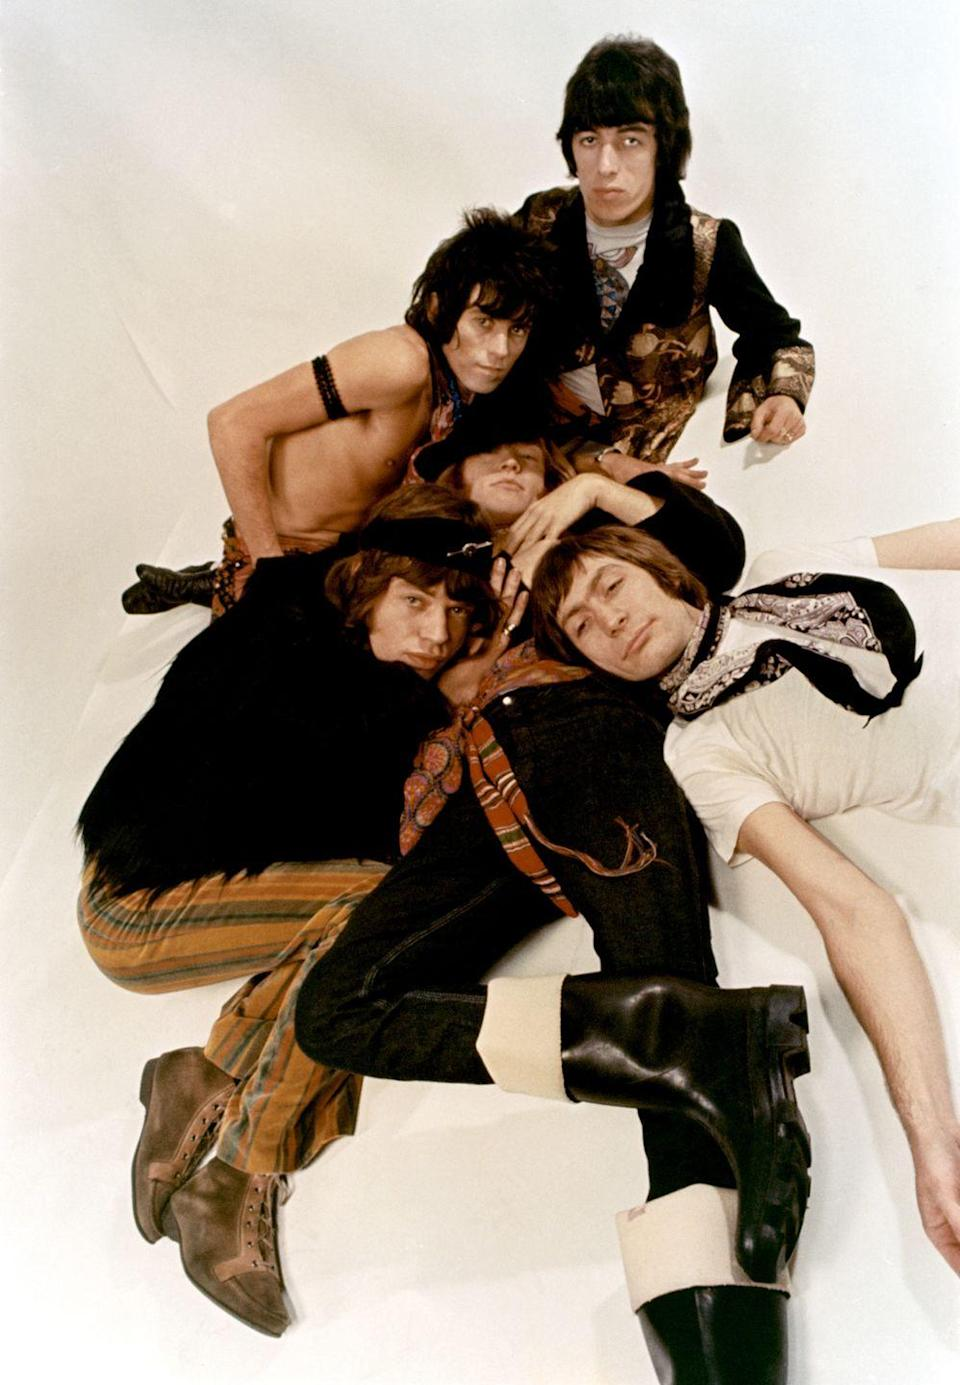 <p>1968: Rock and roll band 'The Rolling Stones' pose for a portrait.</p>